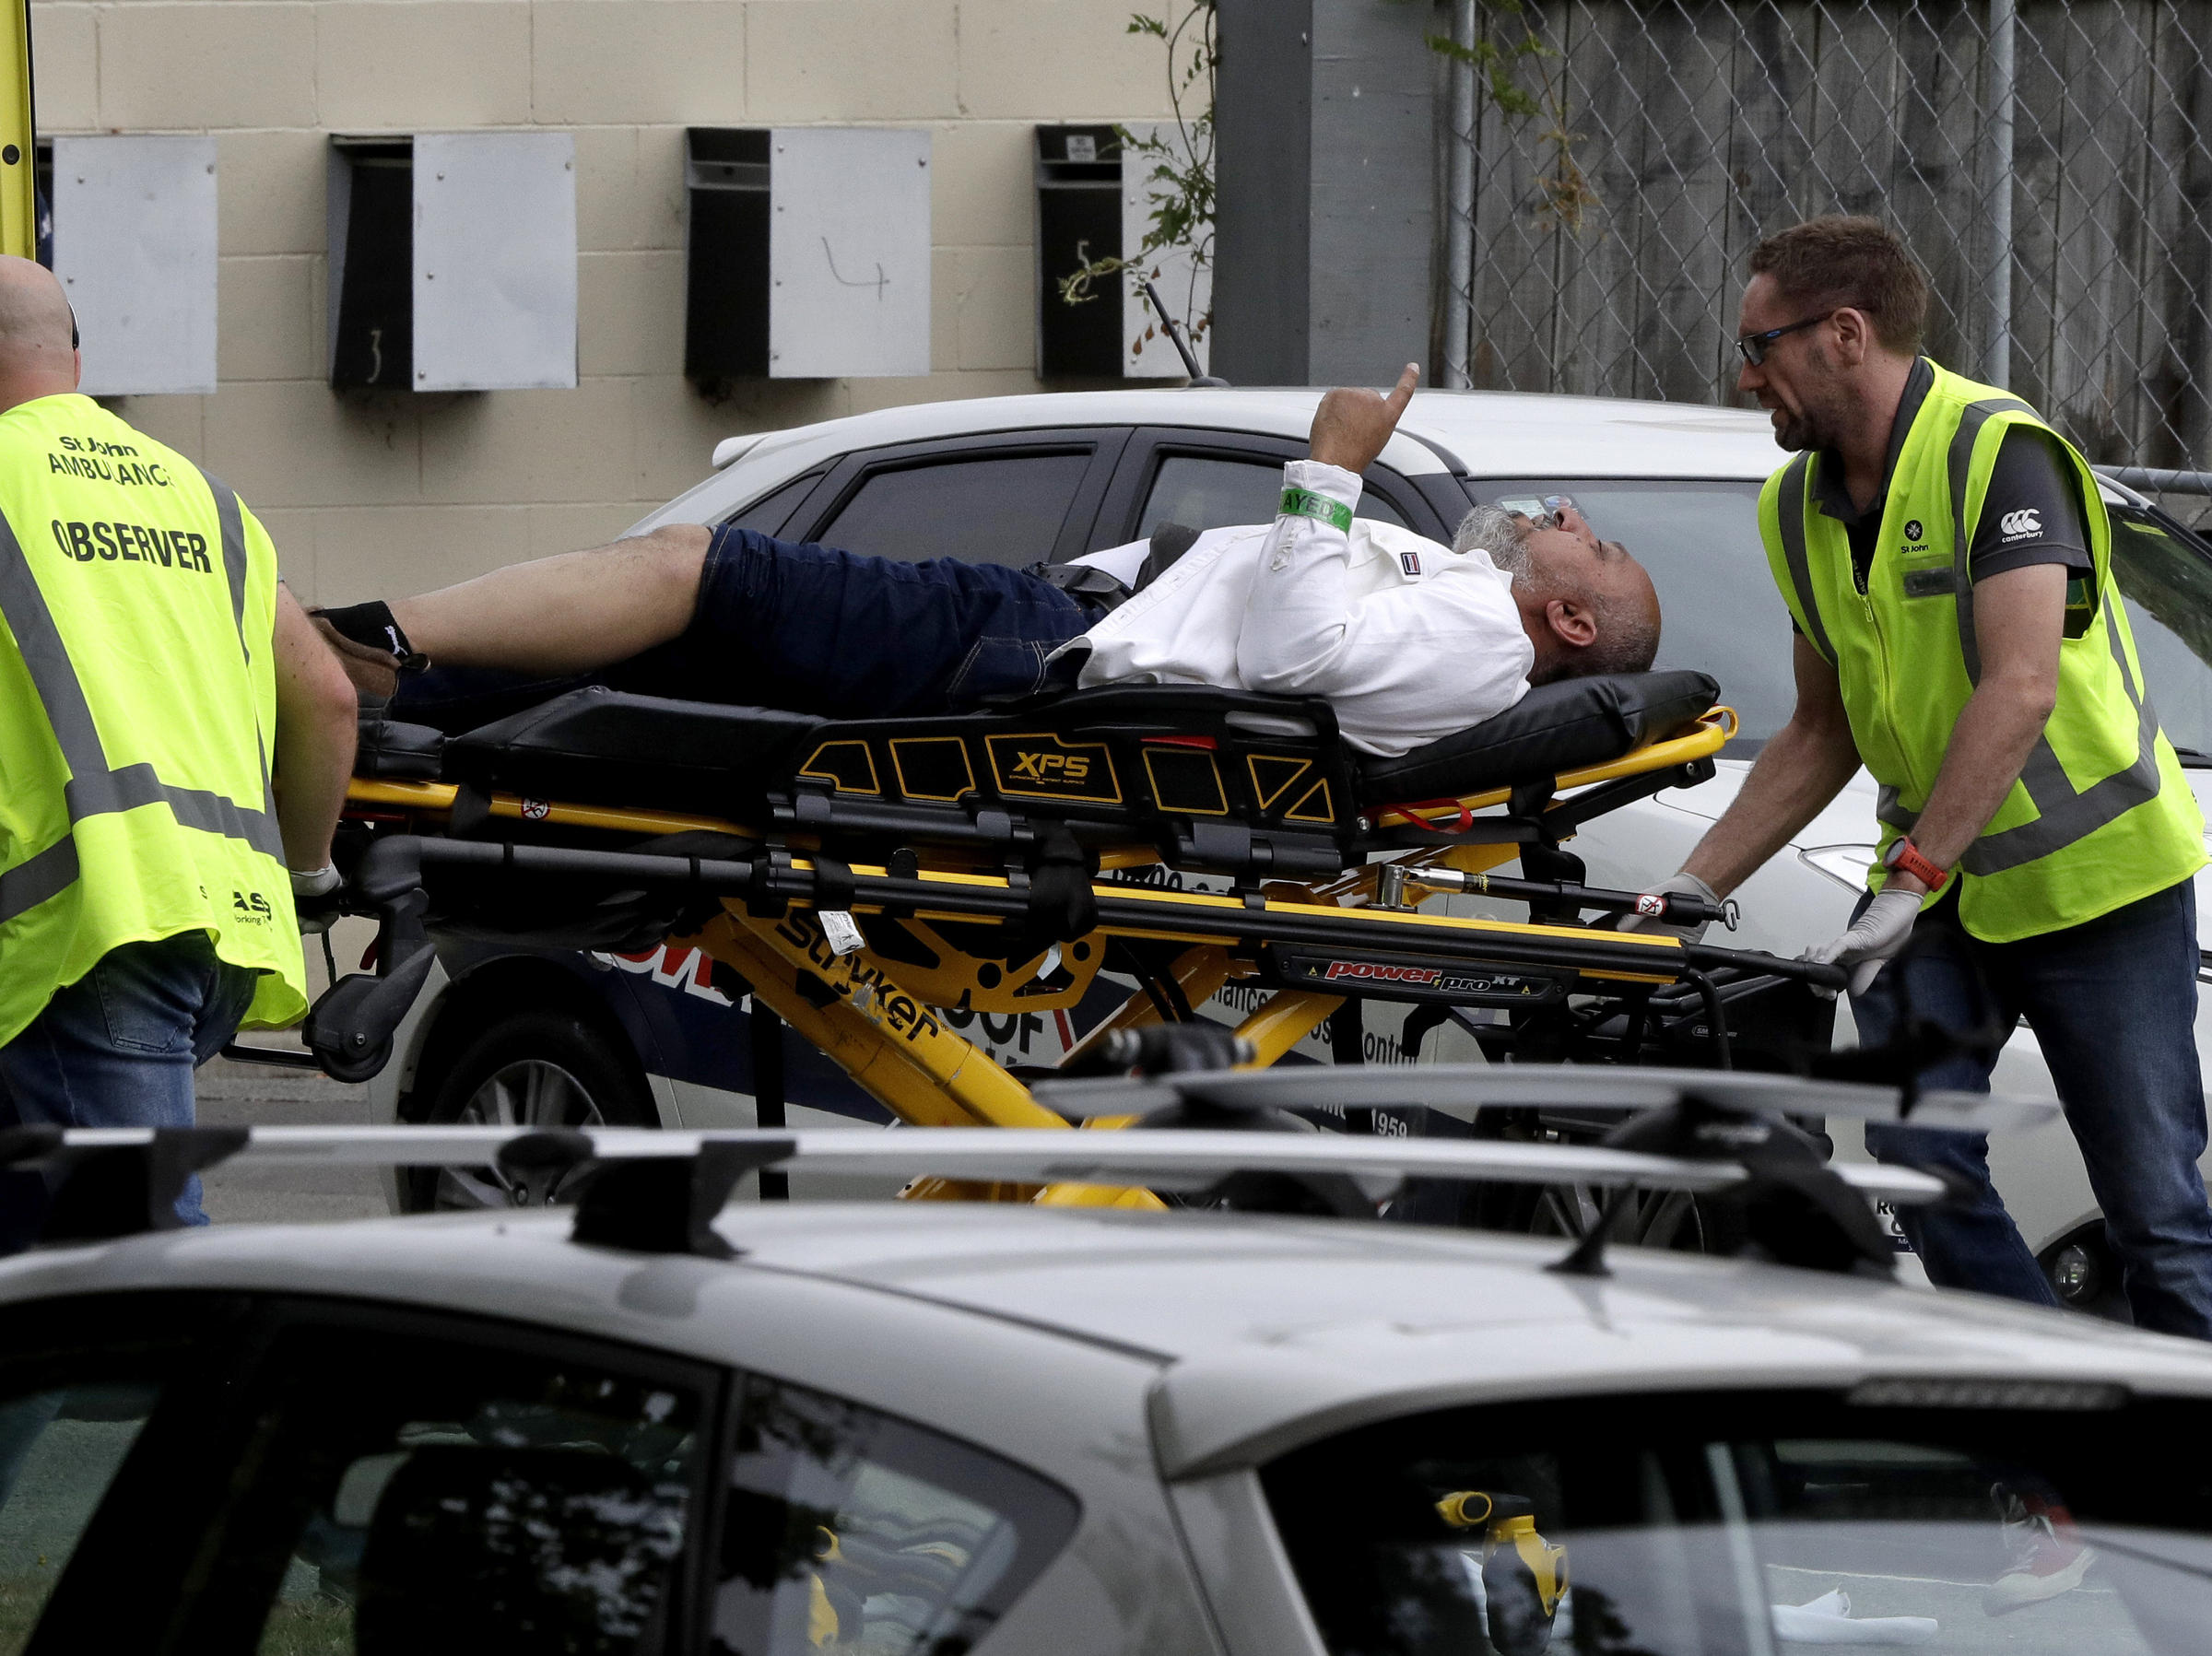 Christchurch Attack: 49 Dead In 'Terrorist Attack' At 2 Mosques In Christchurch